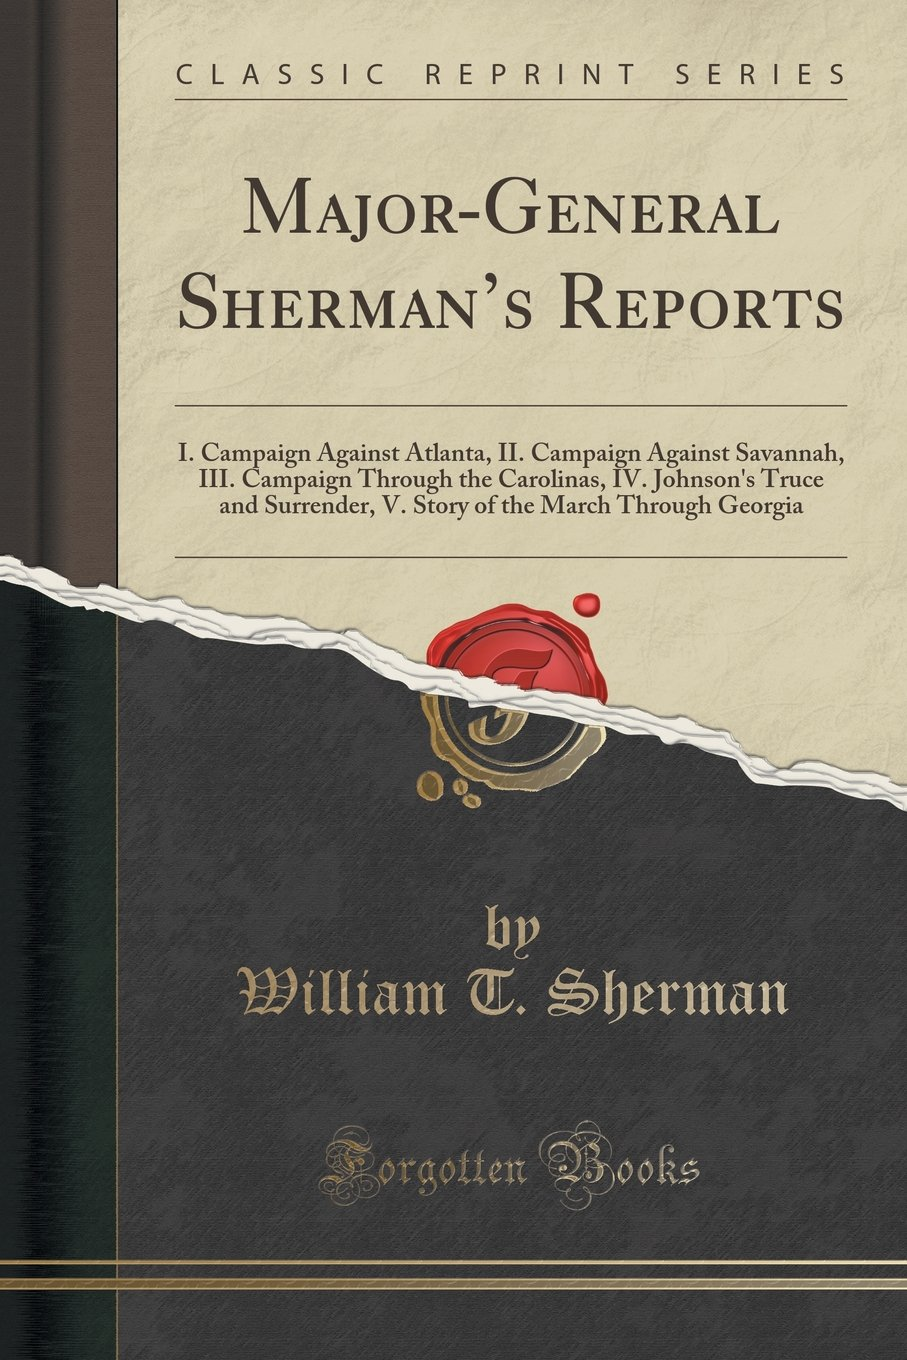 Download Major-General Sherman's Reports: I. Campaign Against Atlanta, II. Campaign Against Savannah, III. Campaign Through the Carolinas, IV. Johnson's Truce ... the March Through Georgia (Classic Reprint) PDF